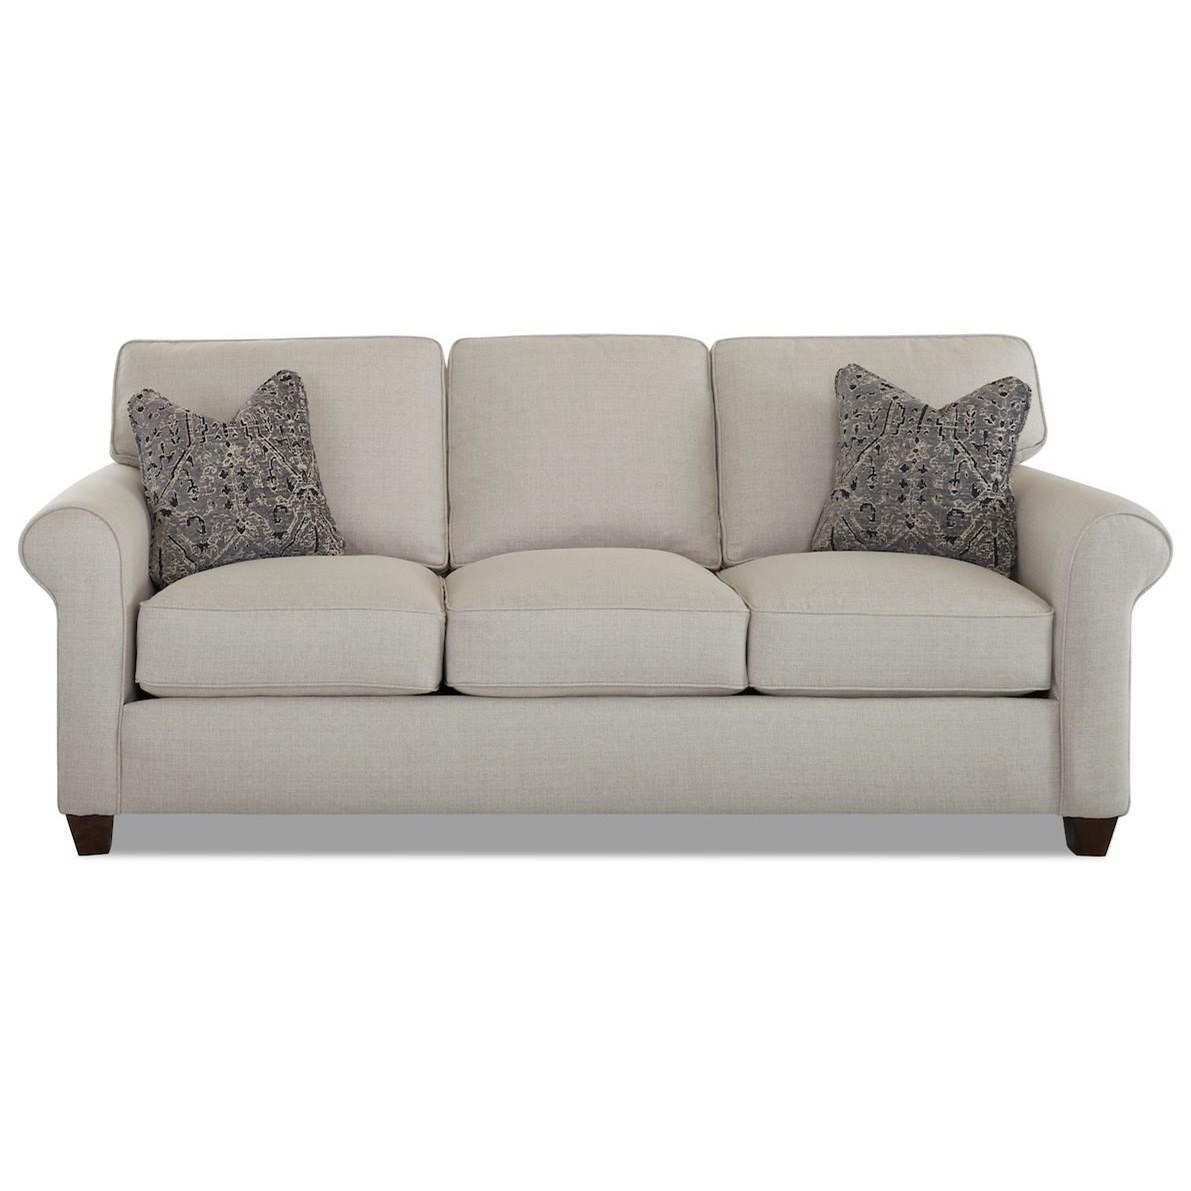 Lillington Distinctions  Extra Large Queen Dreamquest Sleeper Sofa by Klaussner at Johnny Janosik